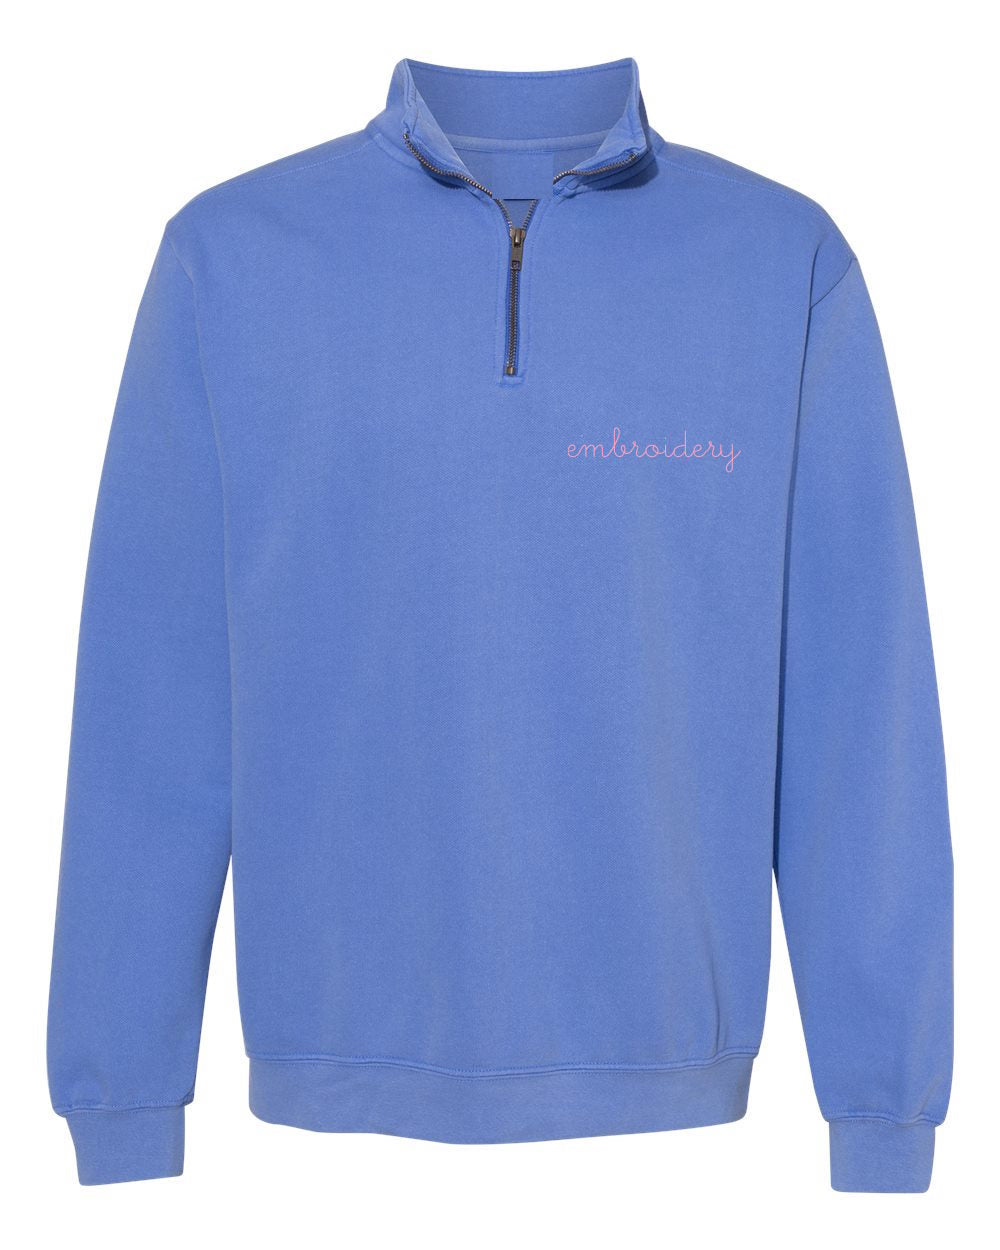 New! Adult Vintagewash Half Zip Fleece (Unisex)